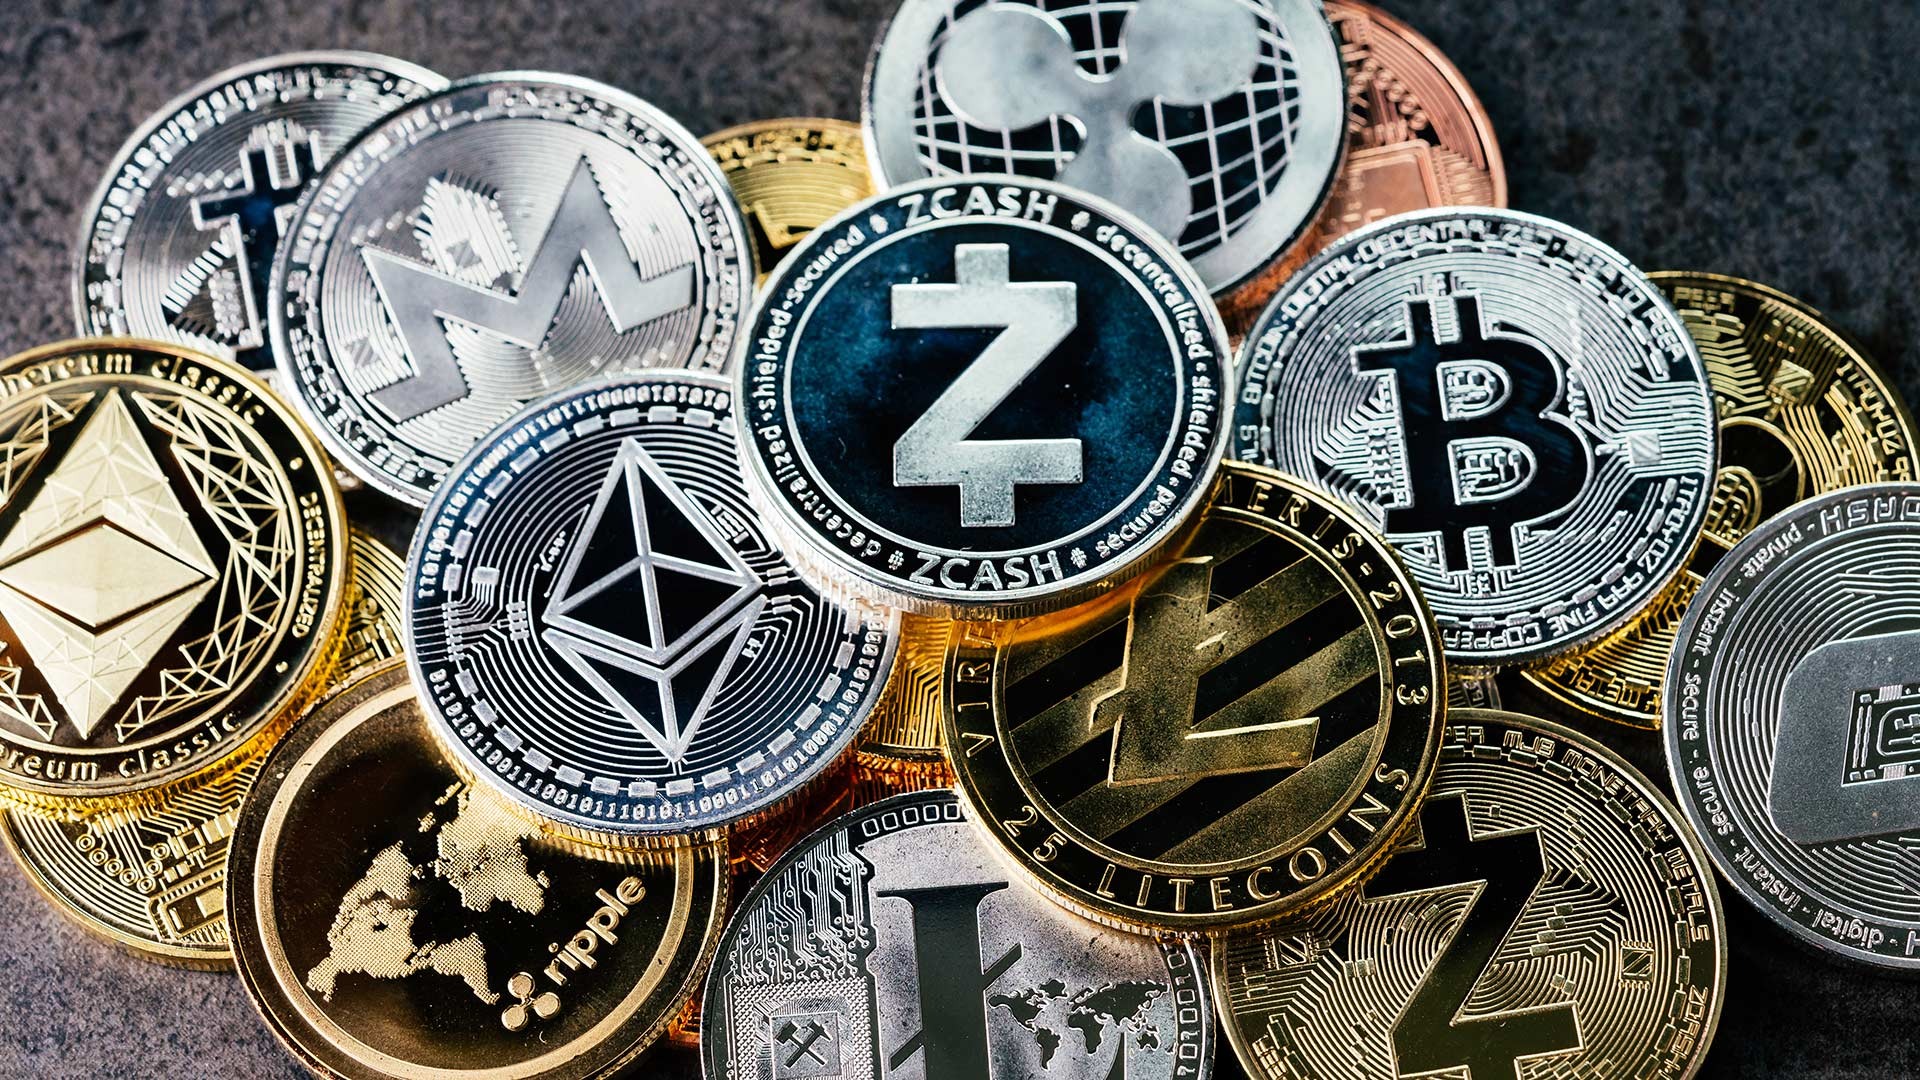 Cryptocurrency tokens